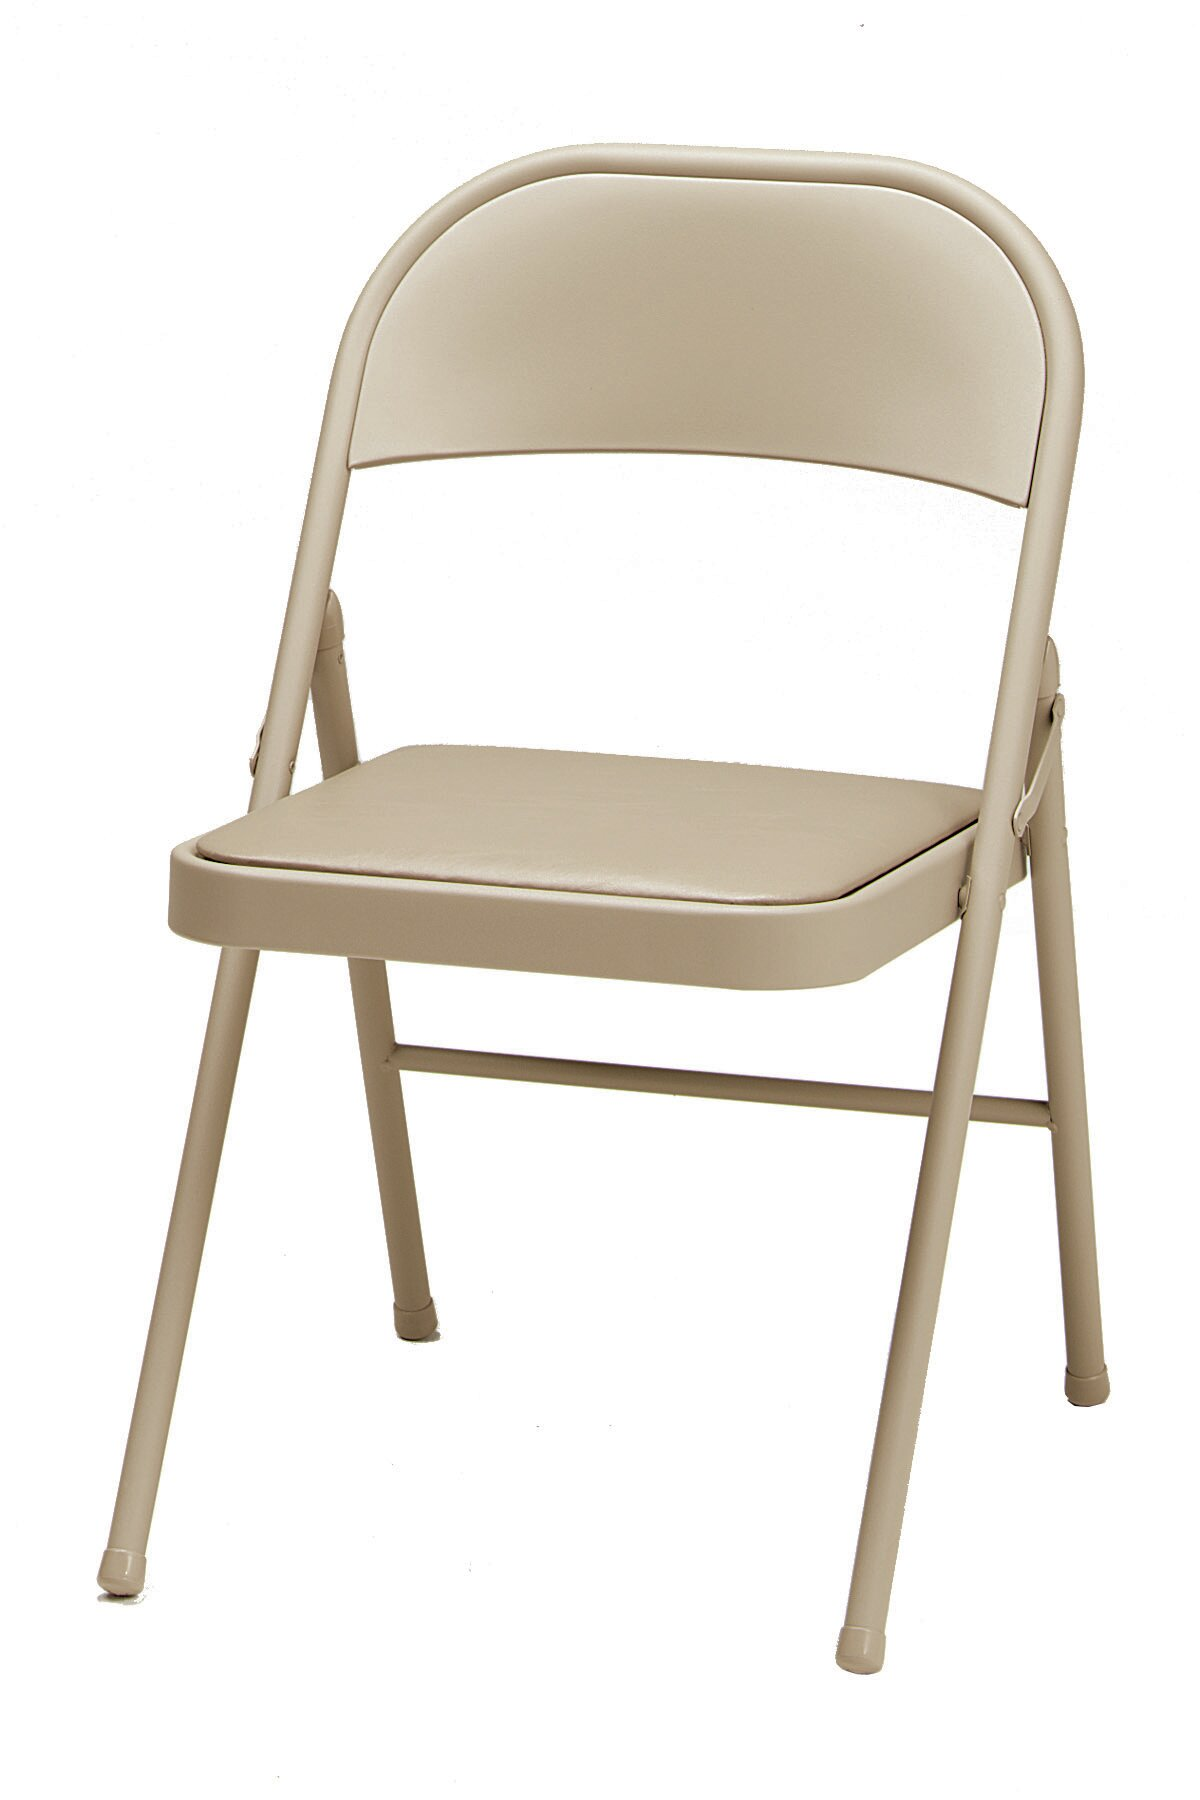 Meco Single Padded Folding Chair & Reviews